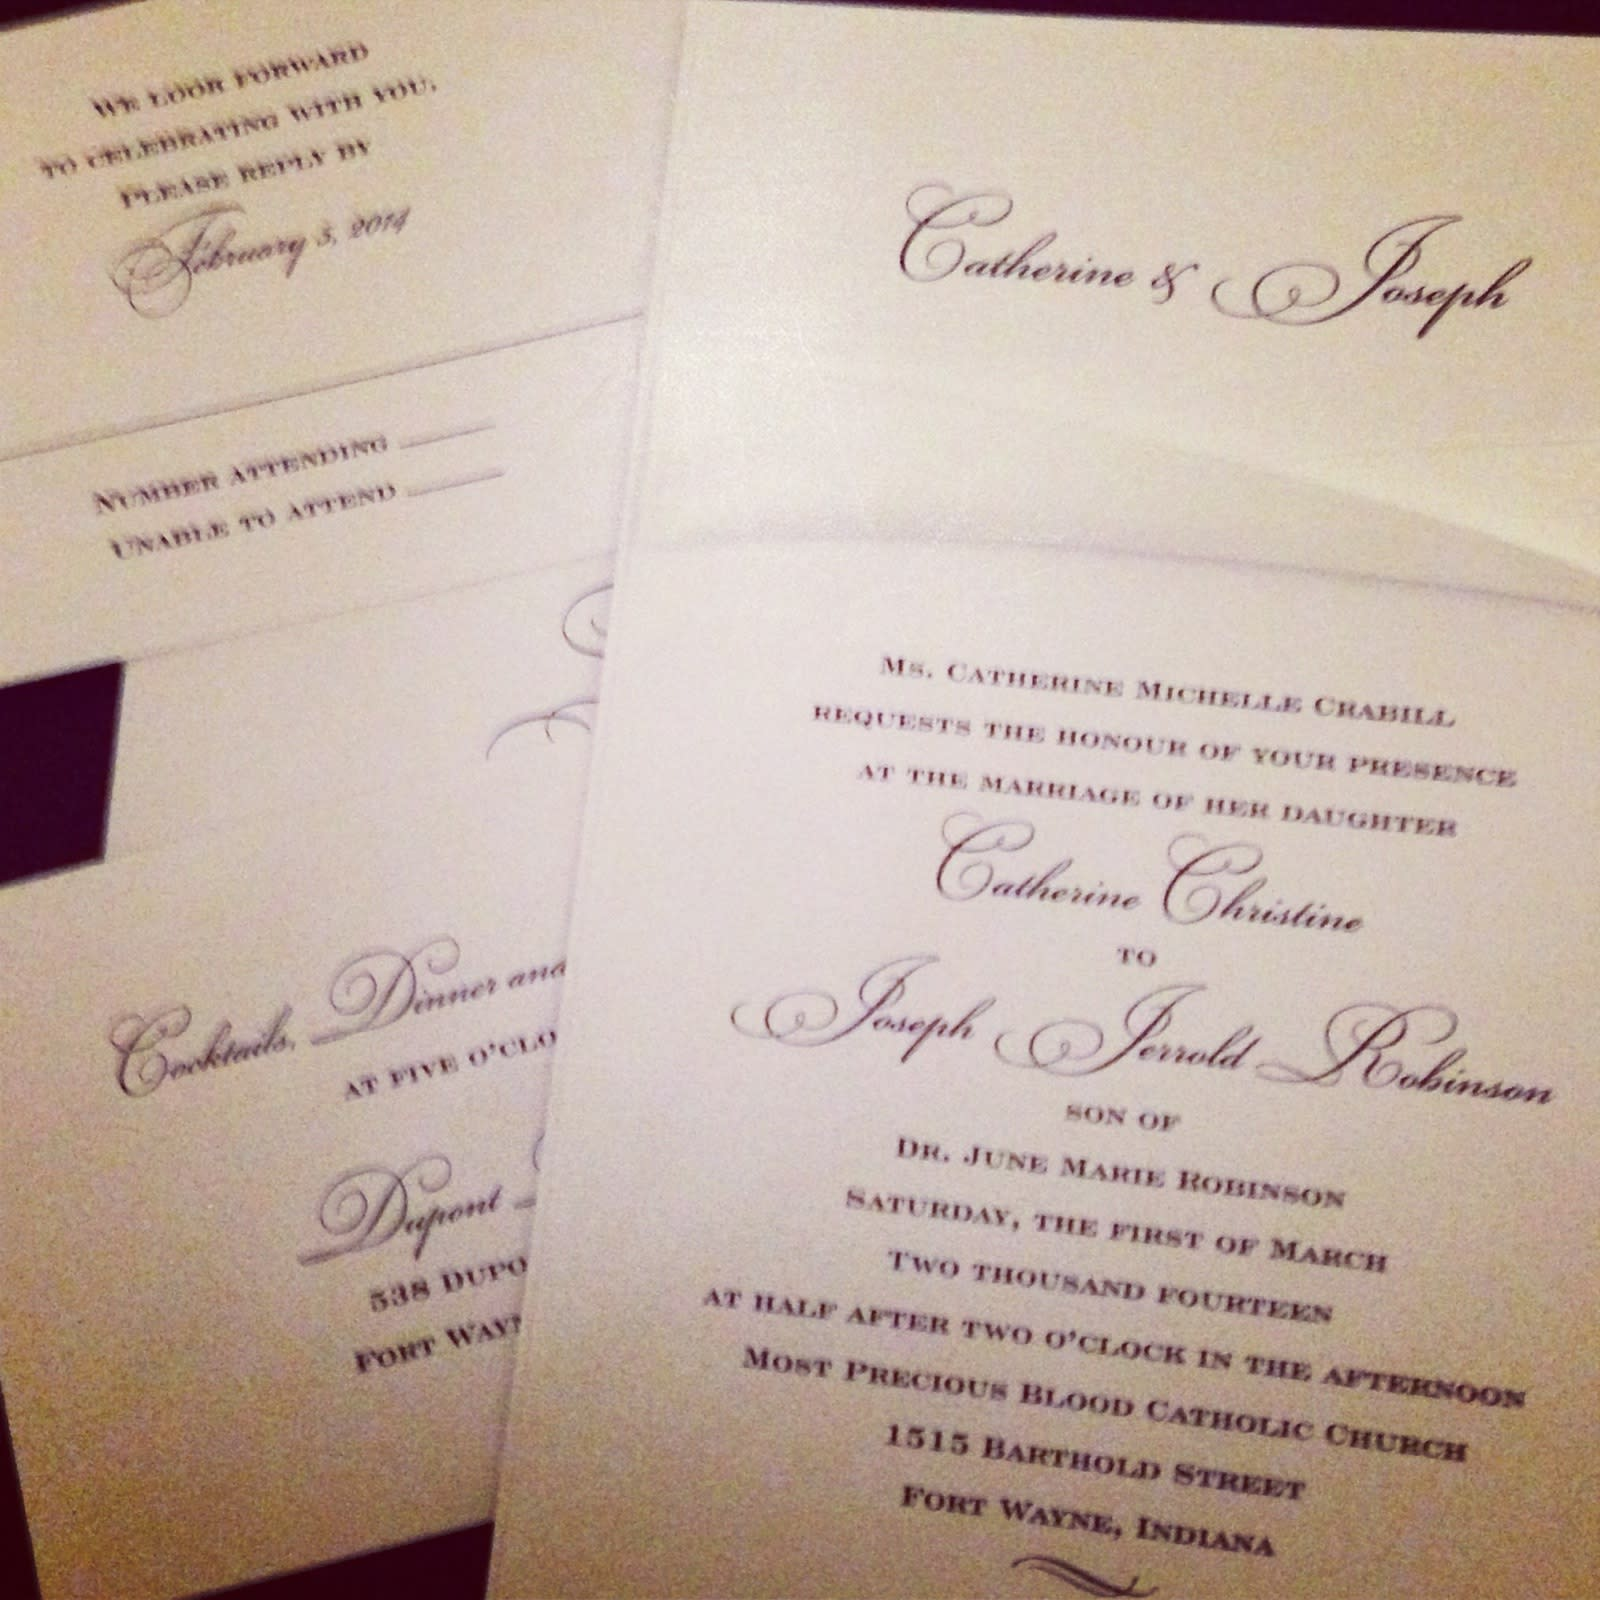 The Monogram Shoppe has many styles of wedding invitations to choose from.